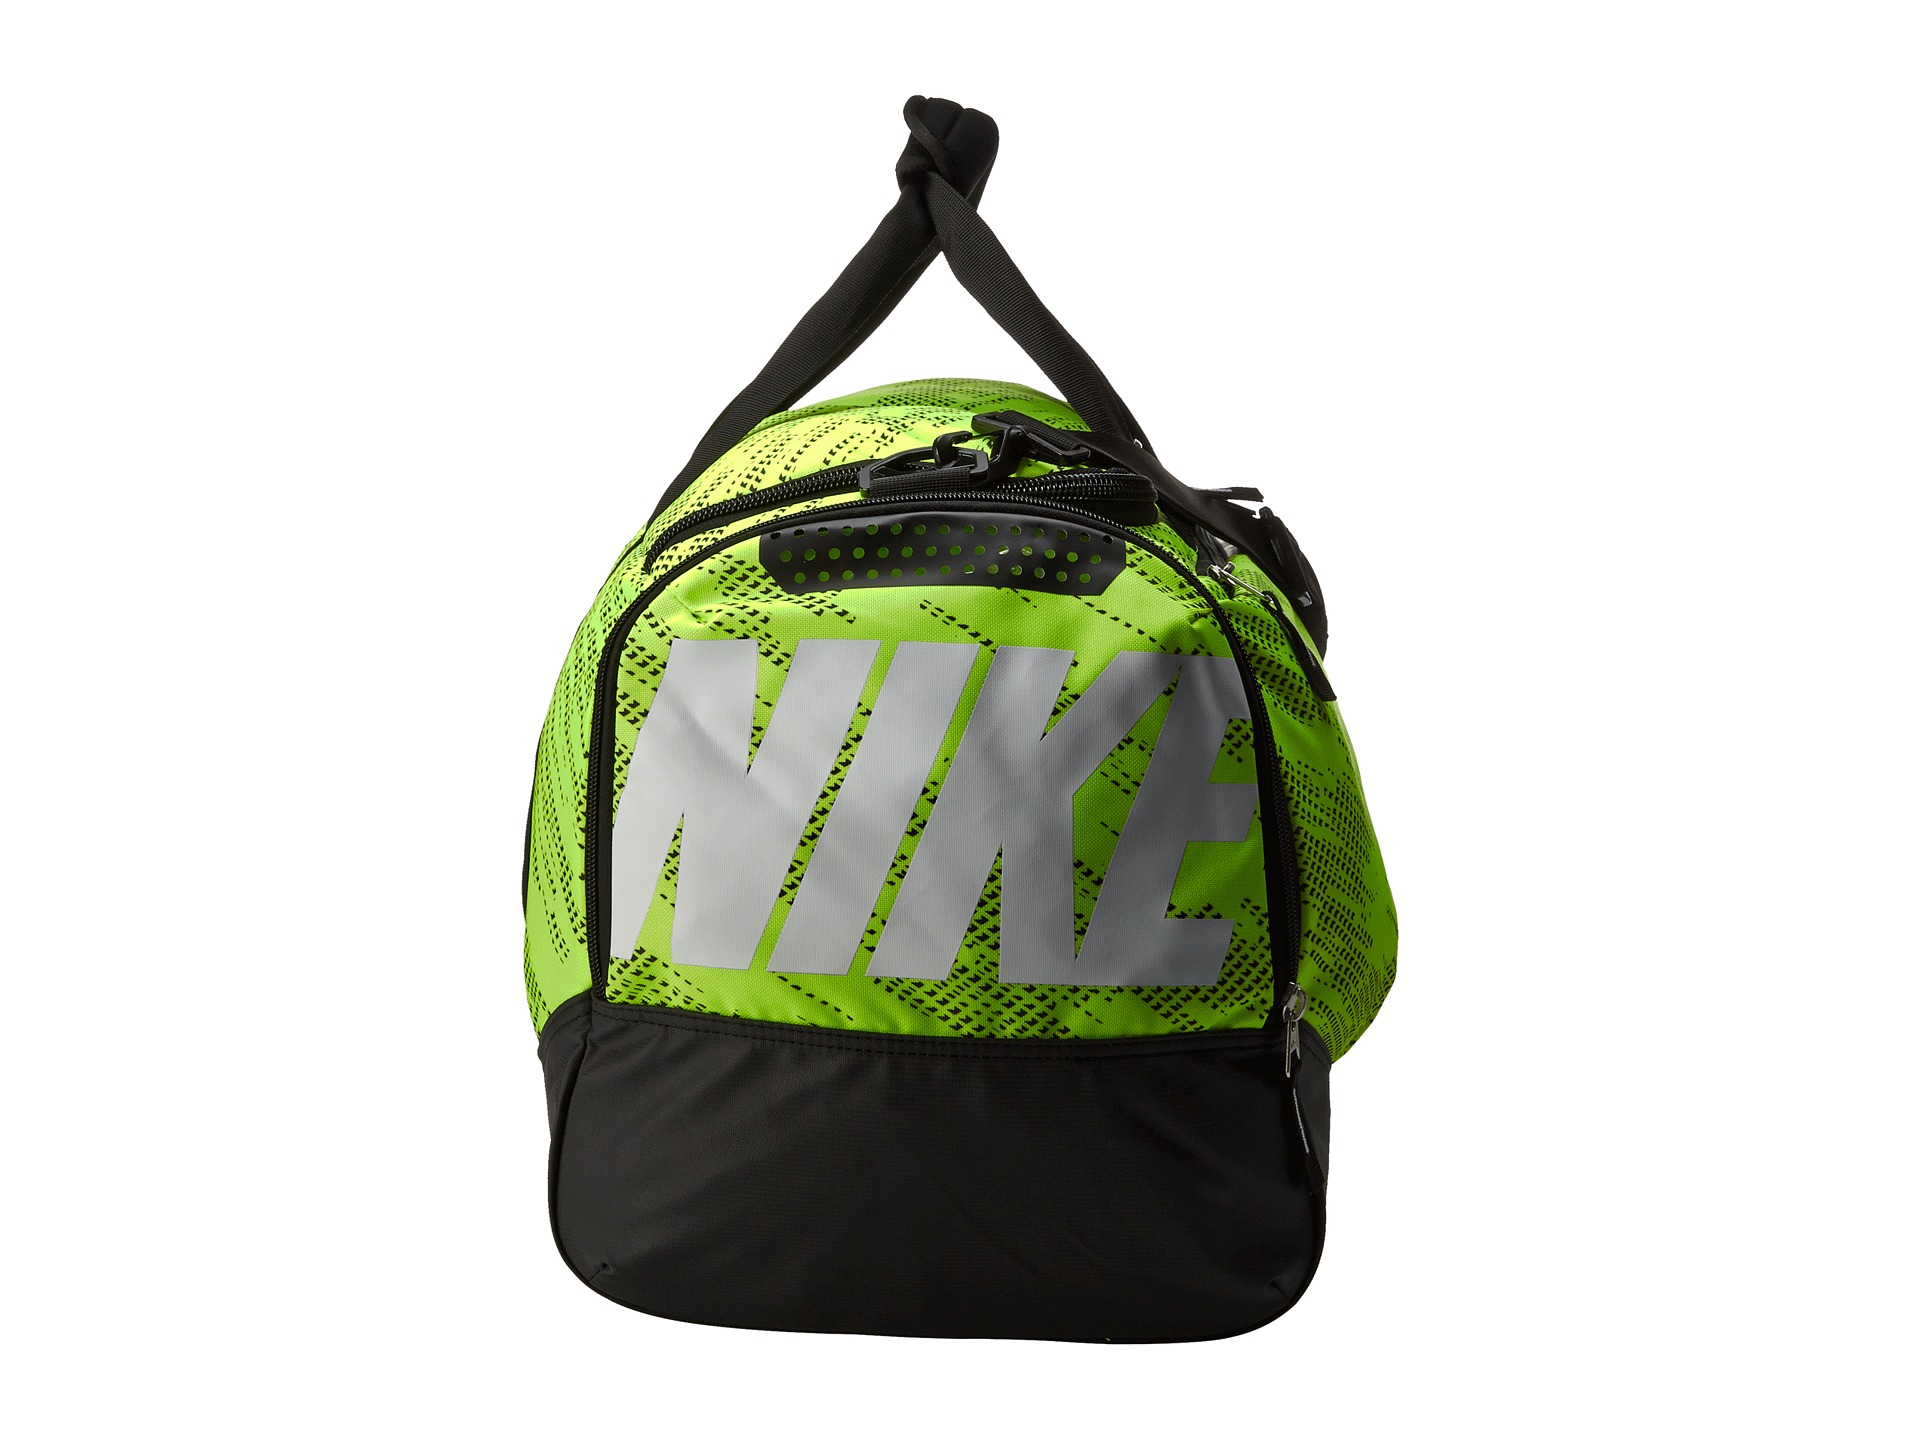 d5b9c514c5 Lyst - Nike Team Training Max Air Medium Duffel Graphic in Green for Men